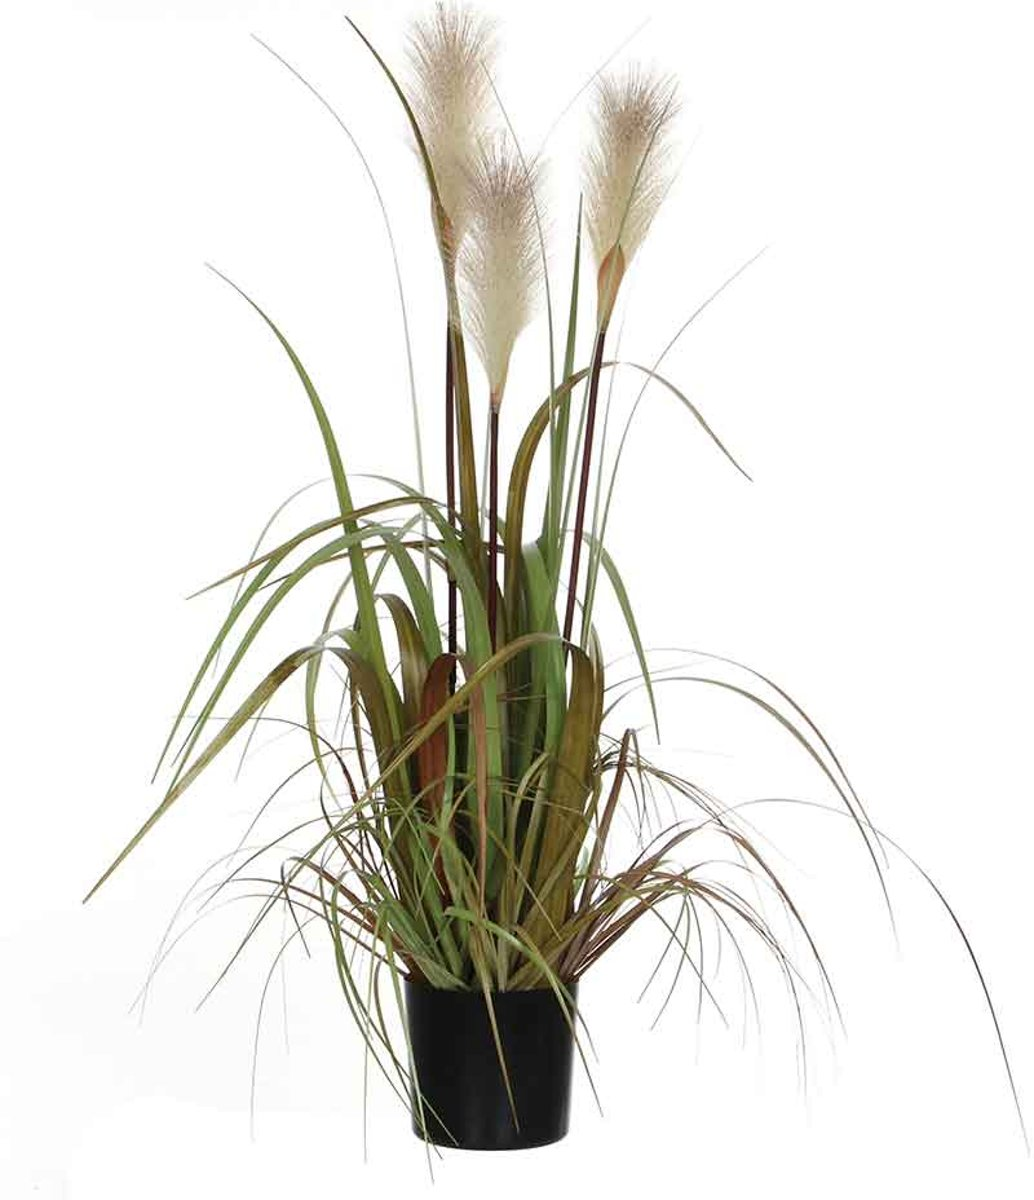 Mica Decorations pluimgras foxtail wit in pot maat in cm: 81 x 45